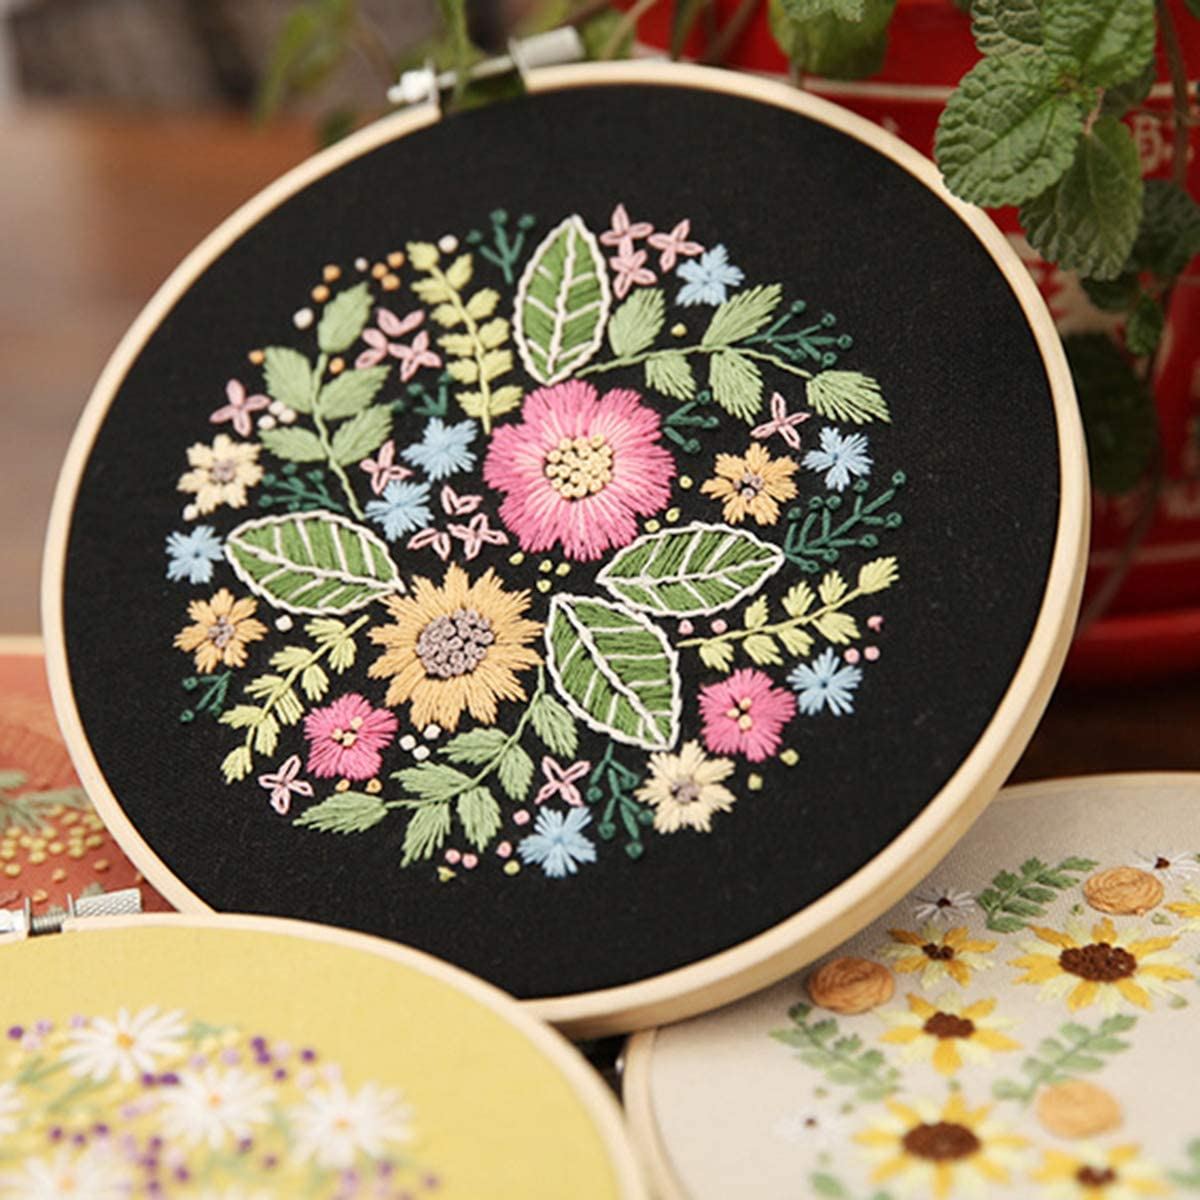 Tools puseky 2 Set of Embroidery Starter Kit Floral Cross Stitch Kit for Beginners Adults Kids Patterned DIY Material Package Embroidery Cloth Bamboo Hook